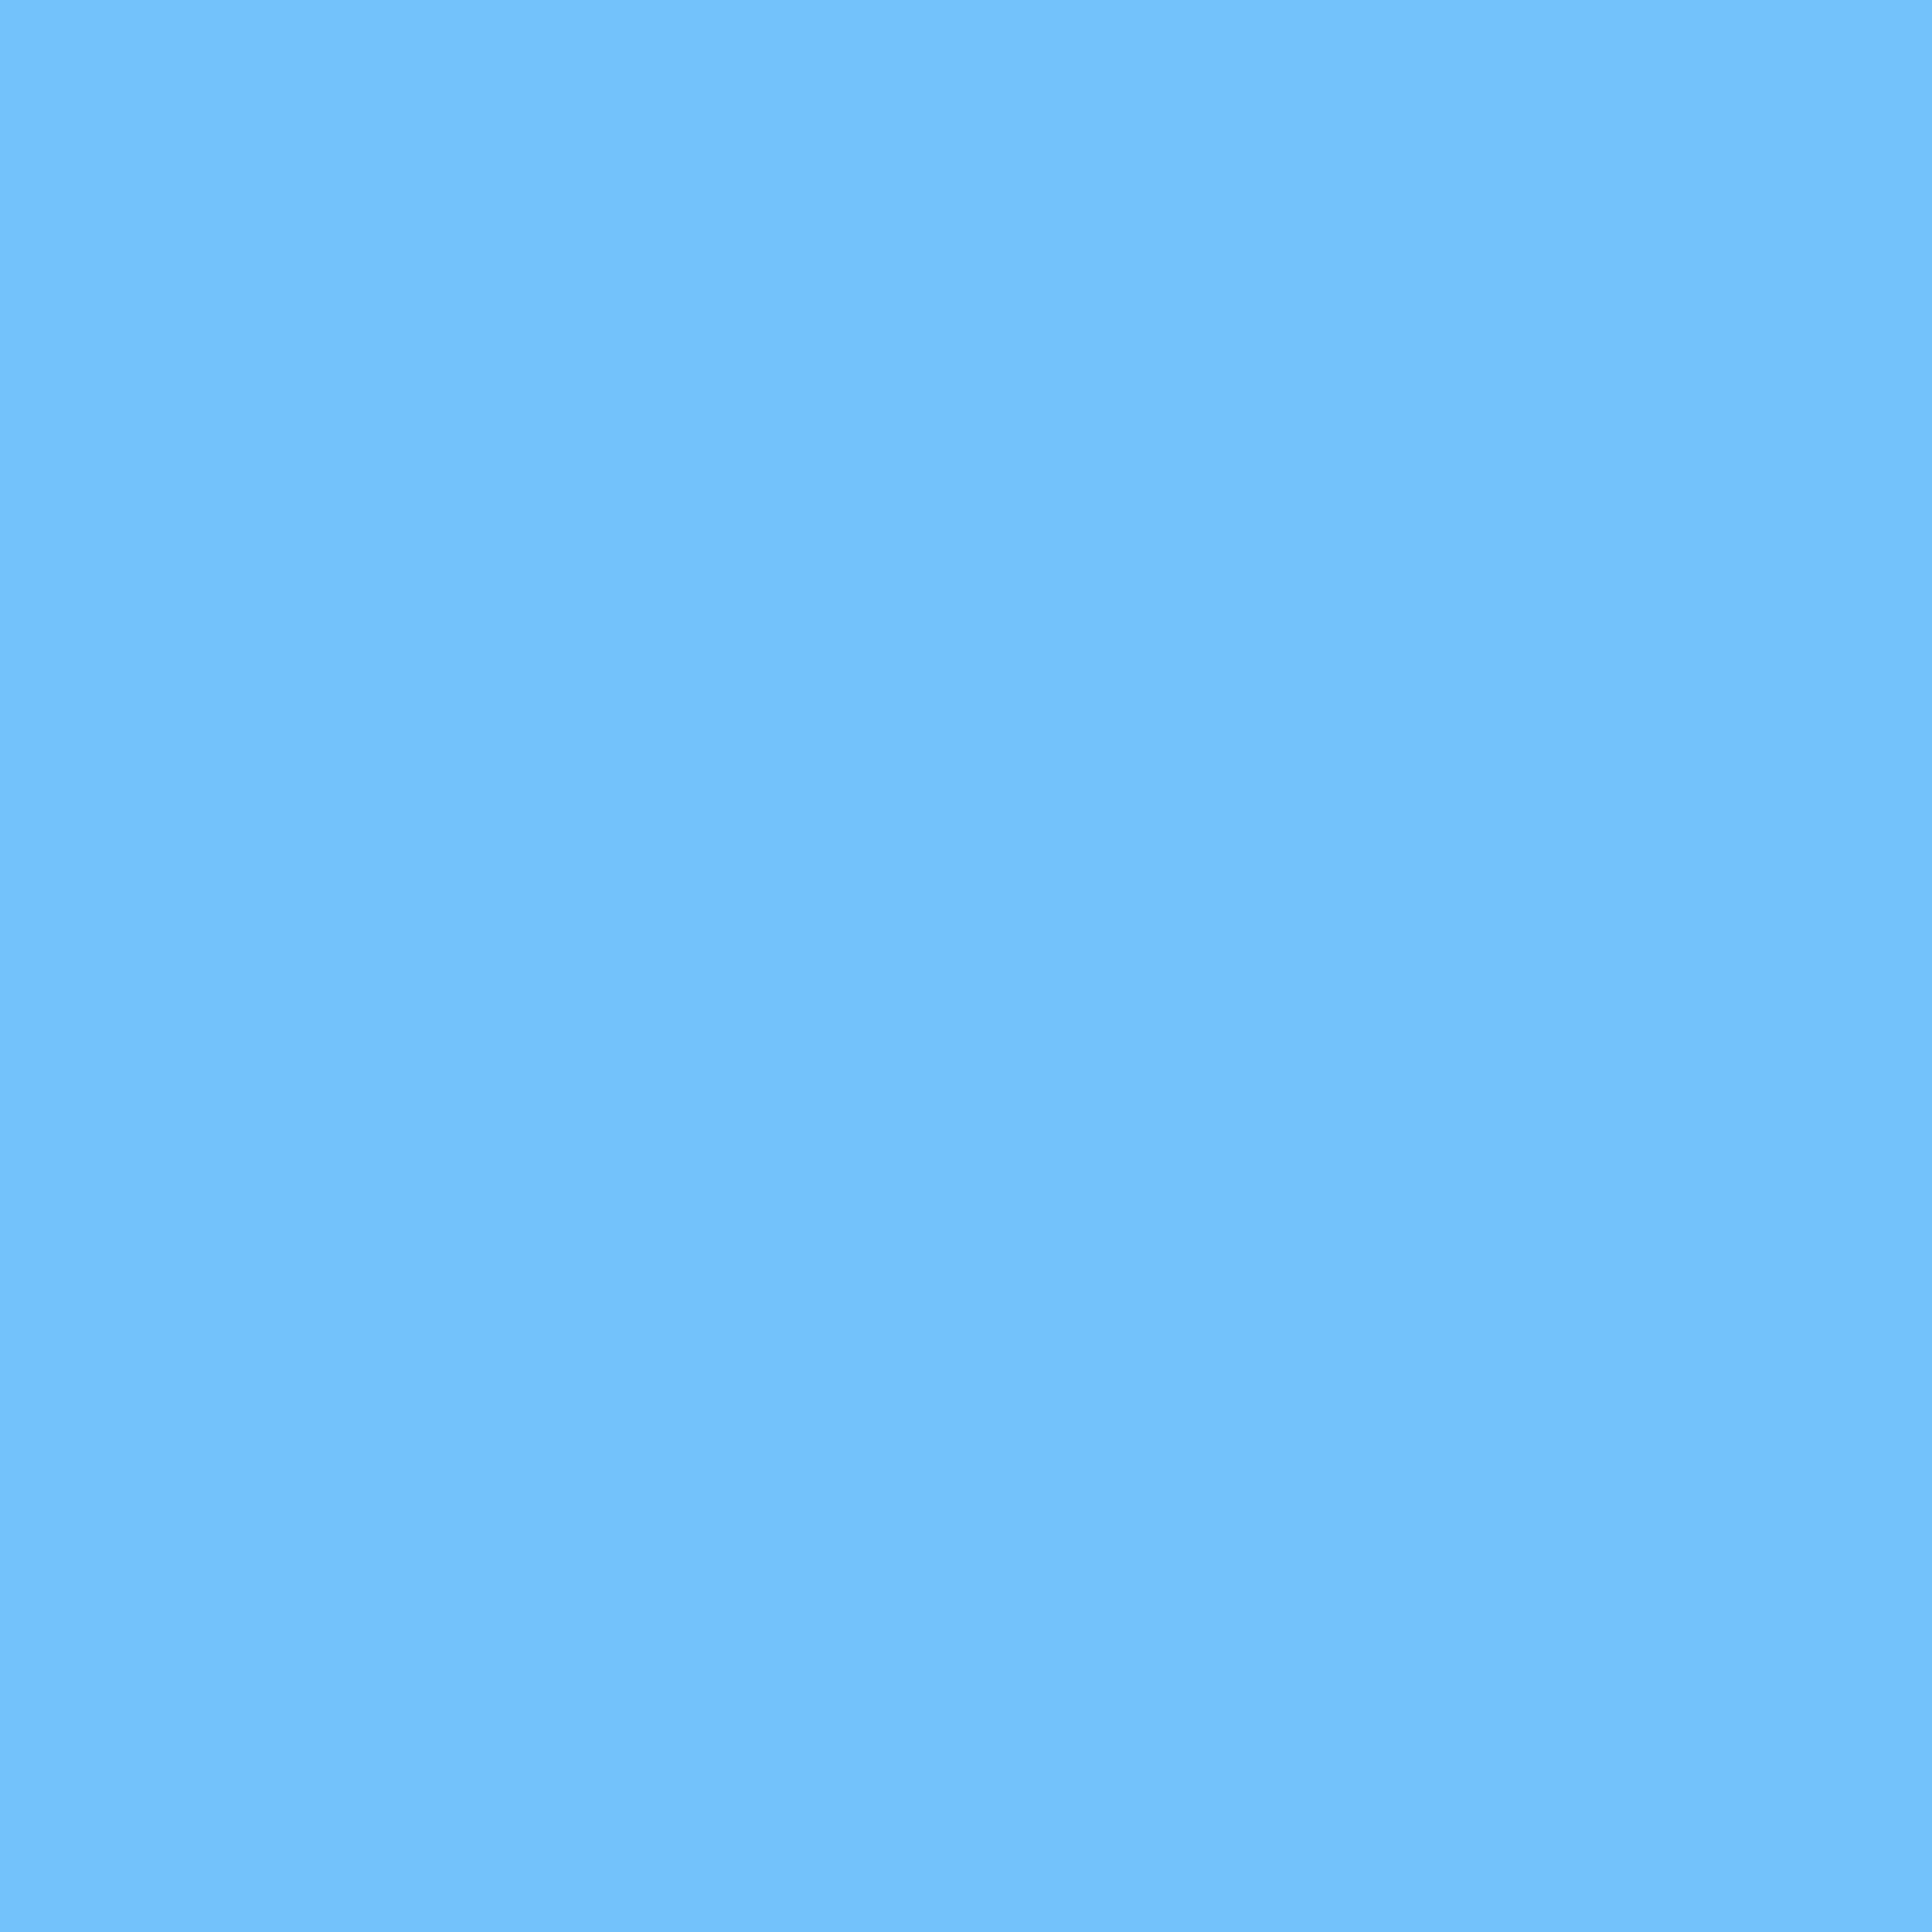 2048x2048 Maya Blue Solid Color Background